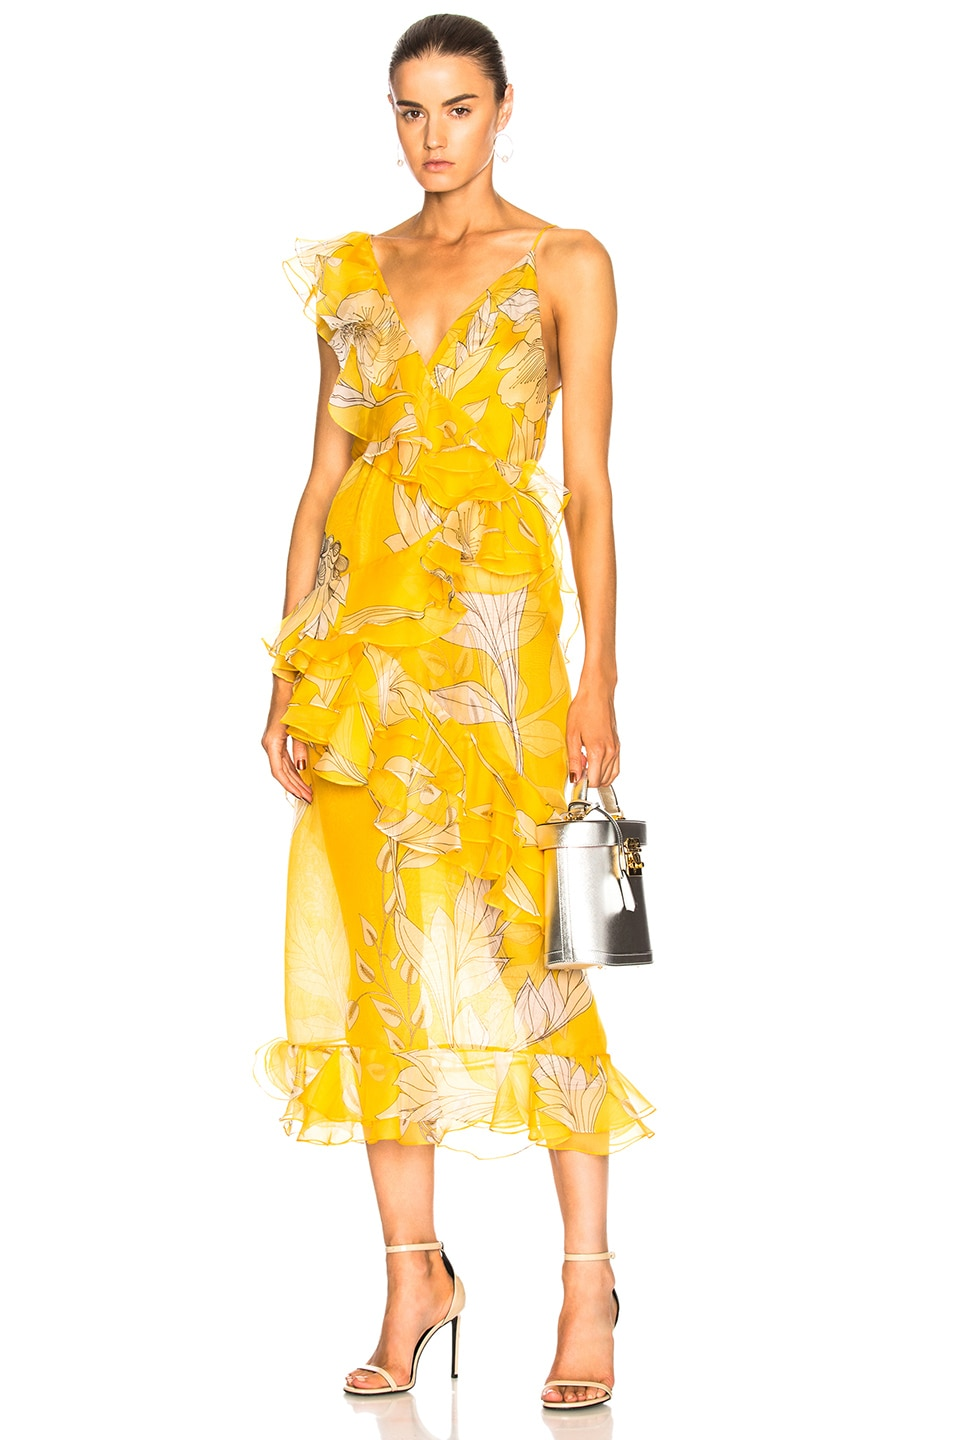 SUNLIGHT SILK MIDI DRESS